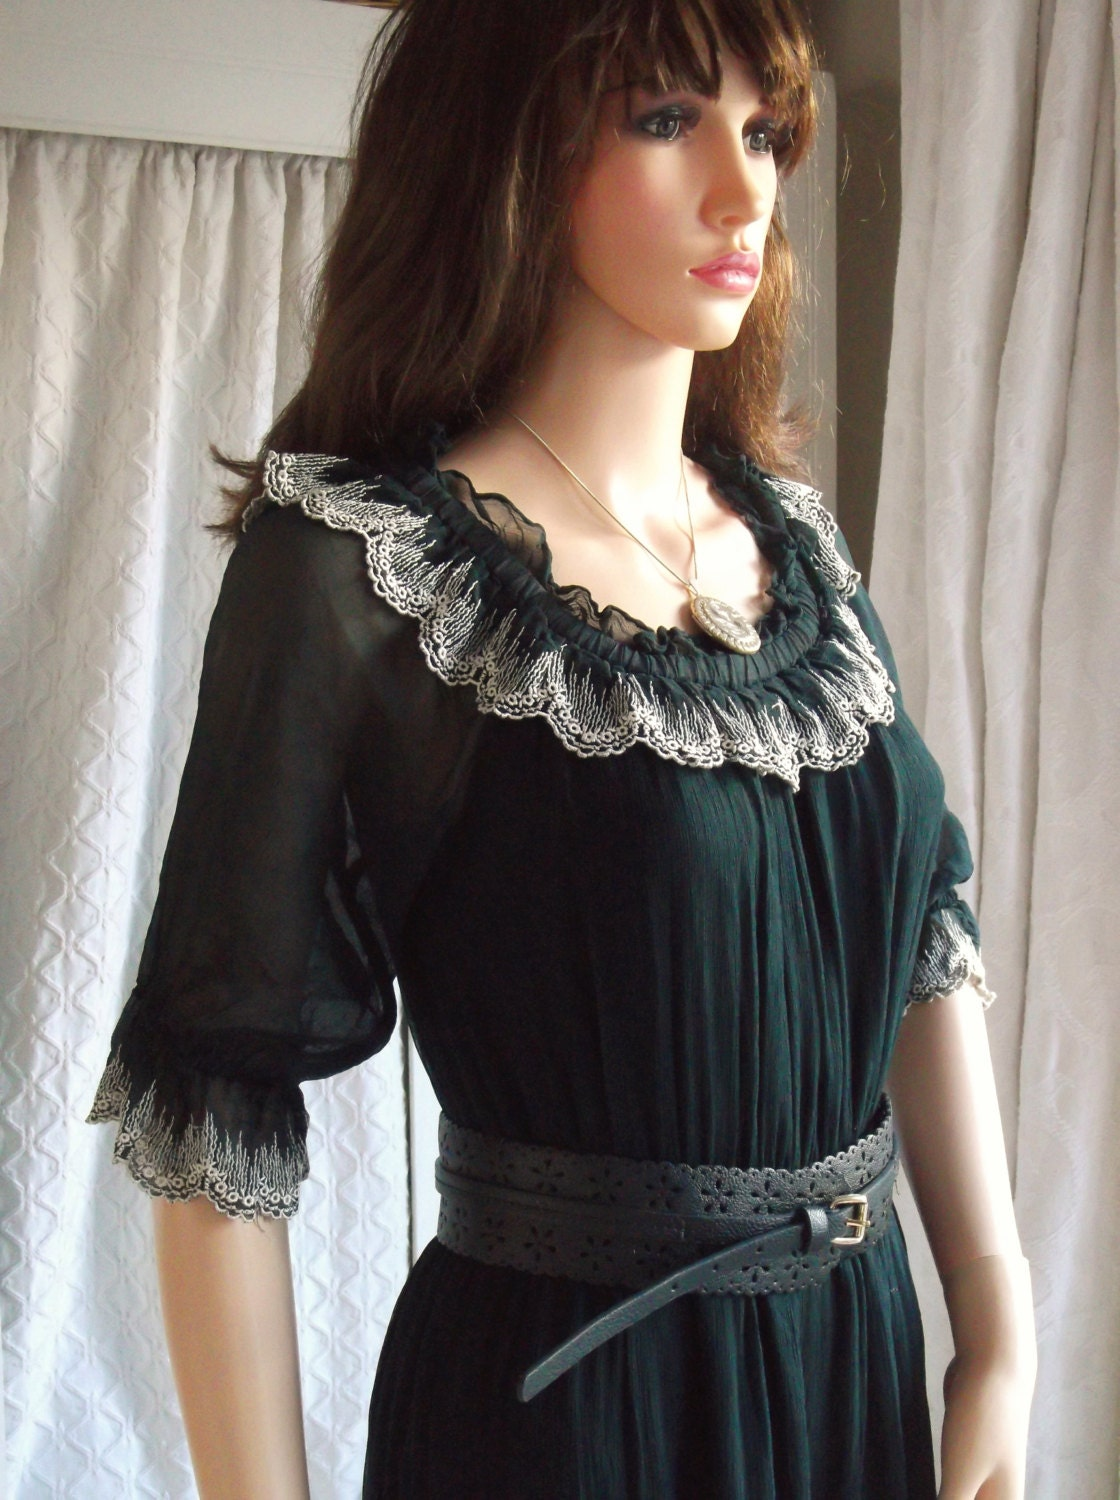 Vintage 1970s French Style Dress Burlesque Black Chiffon